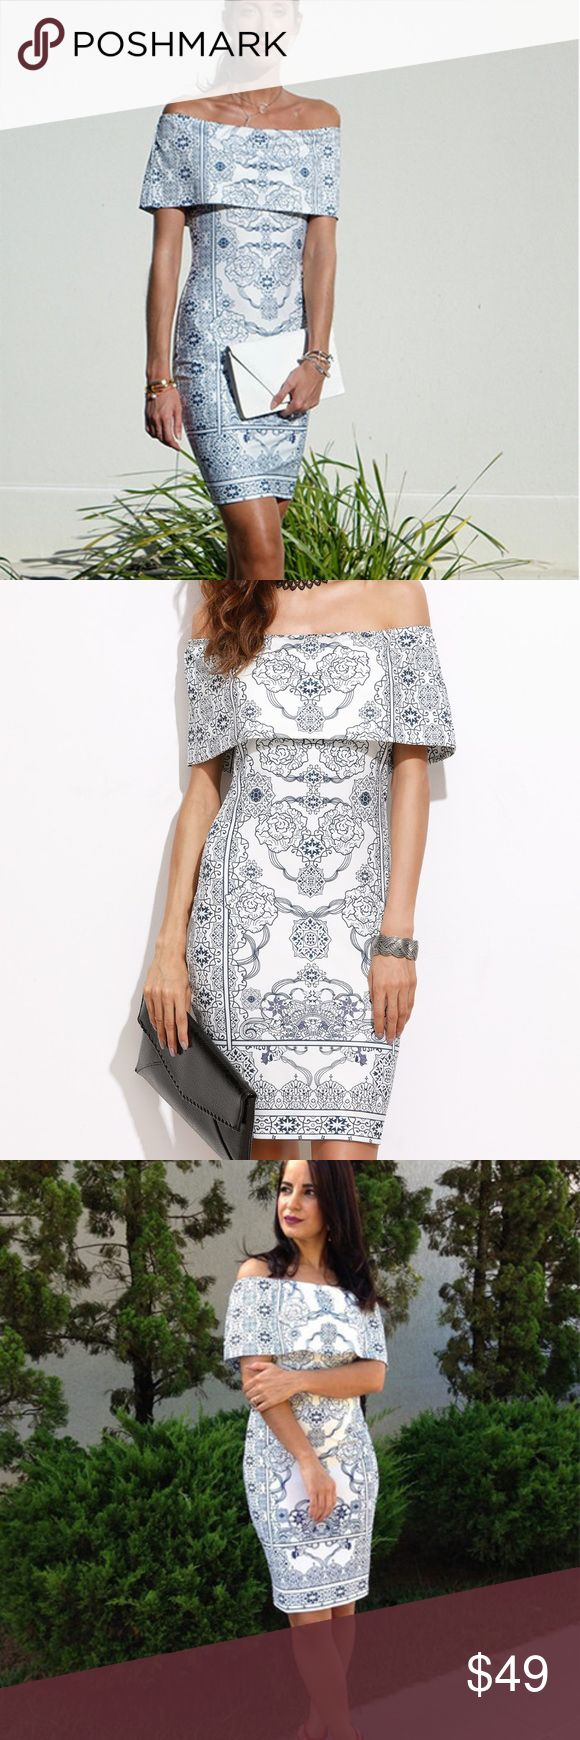 Print Dress Size XS S M L in inches Shoulder: XS 15.4-22.2; S 15.7-22.6; M 16.1-23.0; L 16.5-23.0  Bust: XS 30.3; S 31.9; M 33.5; L 35.0  Waist Size: XS 25.2; S 26.8; M 28.3; L 29.9  Hip Size: XS 32.5;  S 34.1; M 35.6; L 37.2  Length: XS 29.3; S 29.7; M 30.1; L 30.5   Material: 95% Polyester, 5% Spandex   Color: White, Multicolor   Pattern Type: Tribal Print   Neckline: Off the Shoulder   Style: Sexy, Elegant   Silhouette: Bodycon   Sleeve Length: Short Sleeve   Fabric: stretchy  Processing…